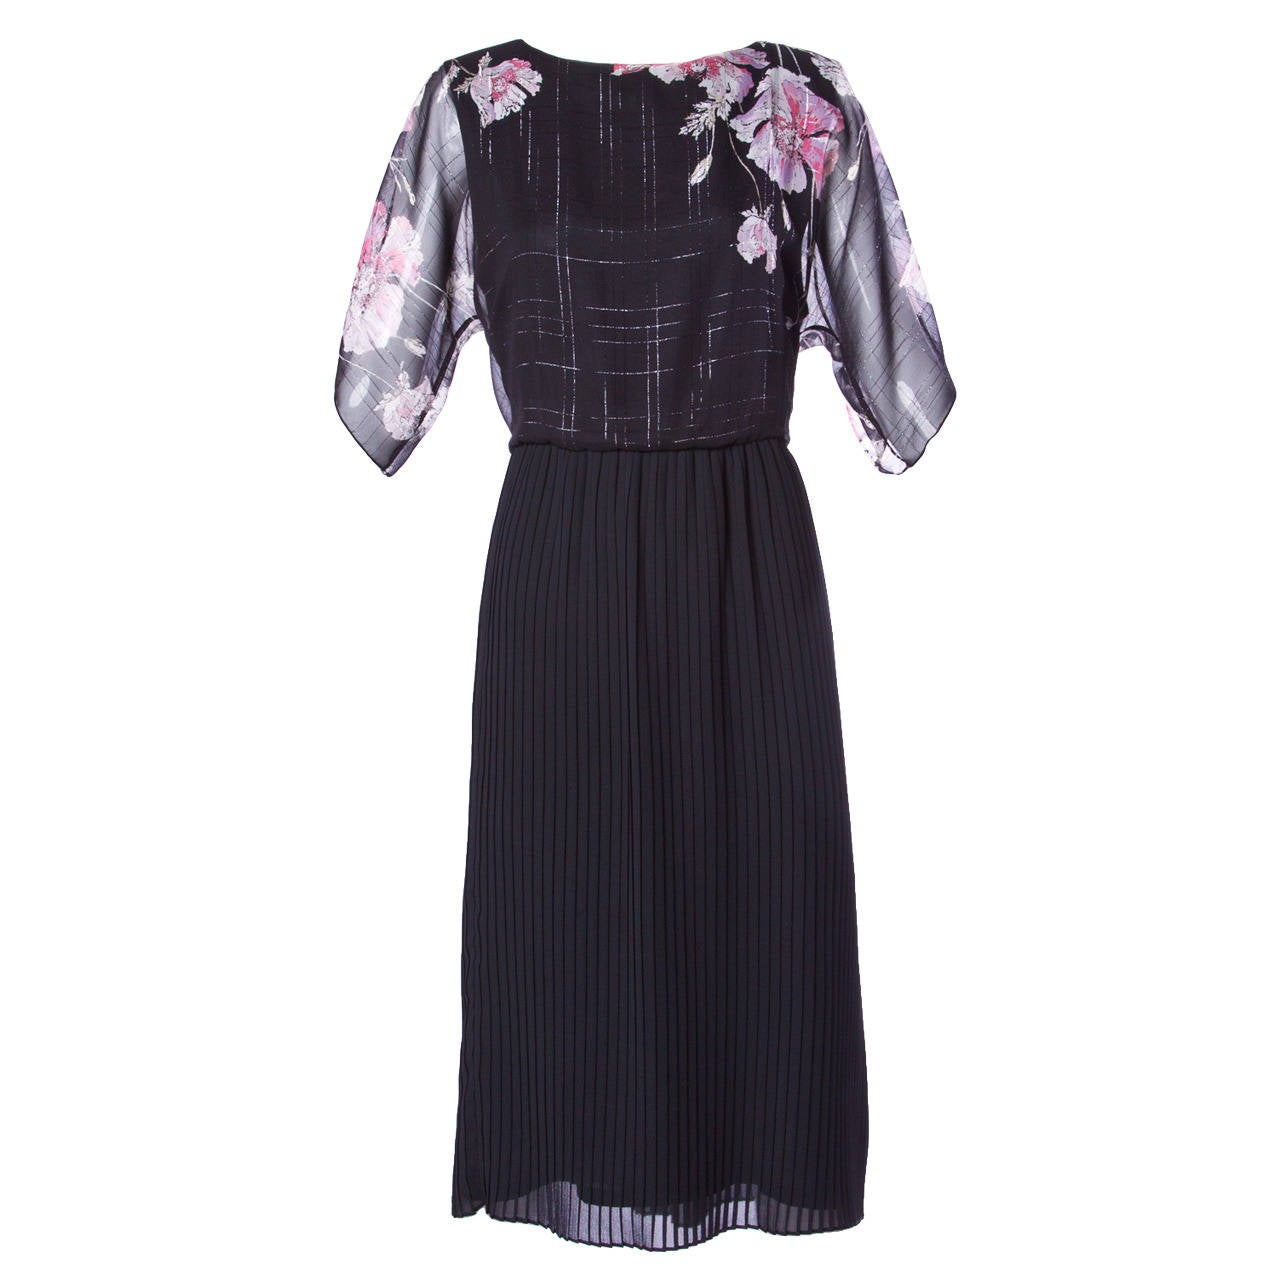 Hanae Mori Vintage 1970s 70s Sheer Floral Print Metallic Dress For Sale